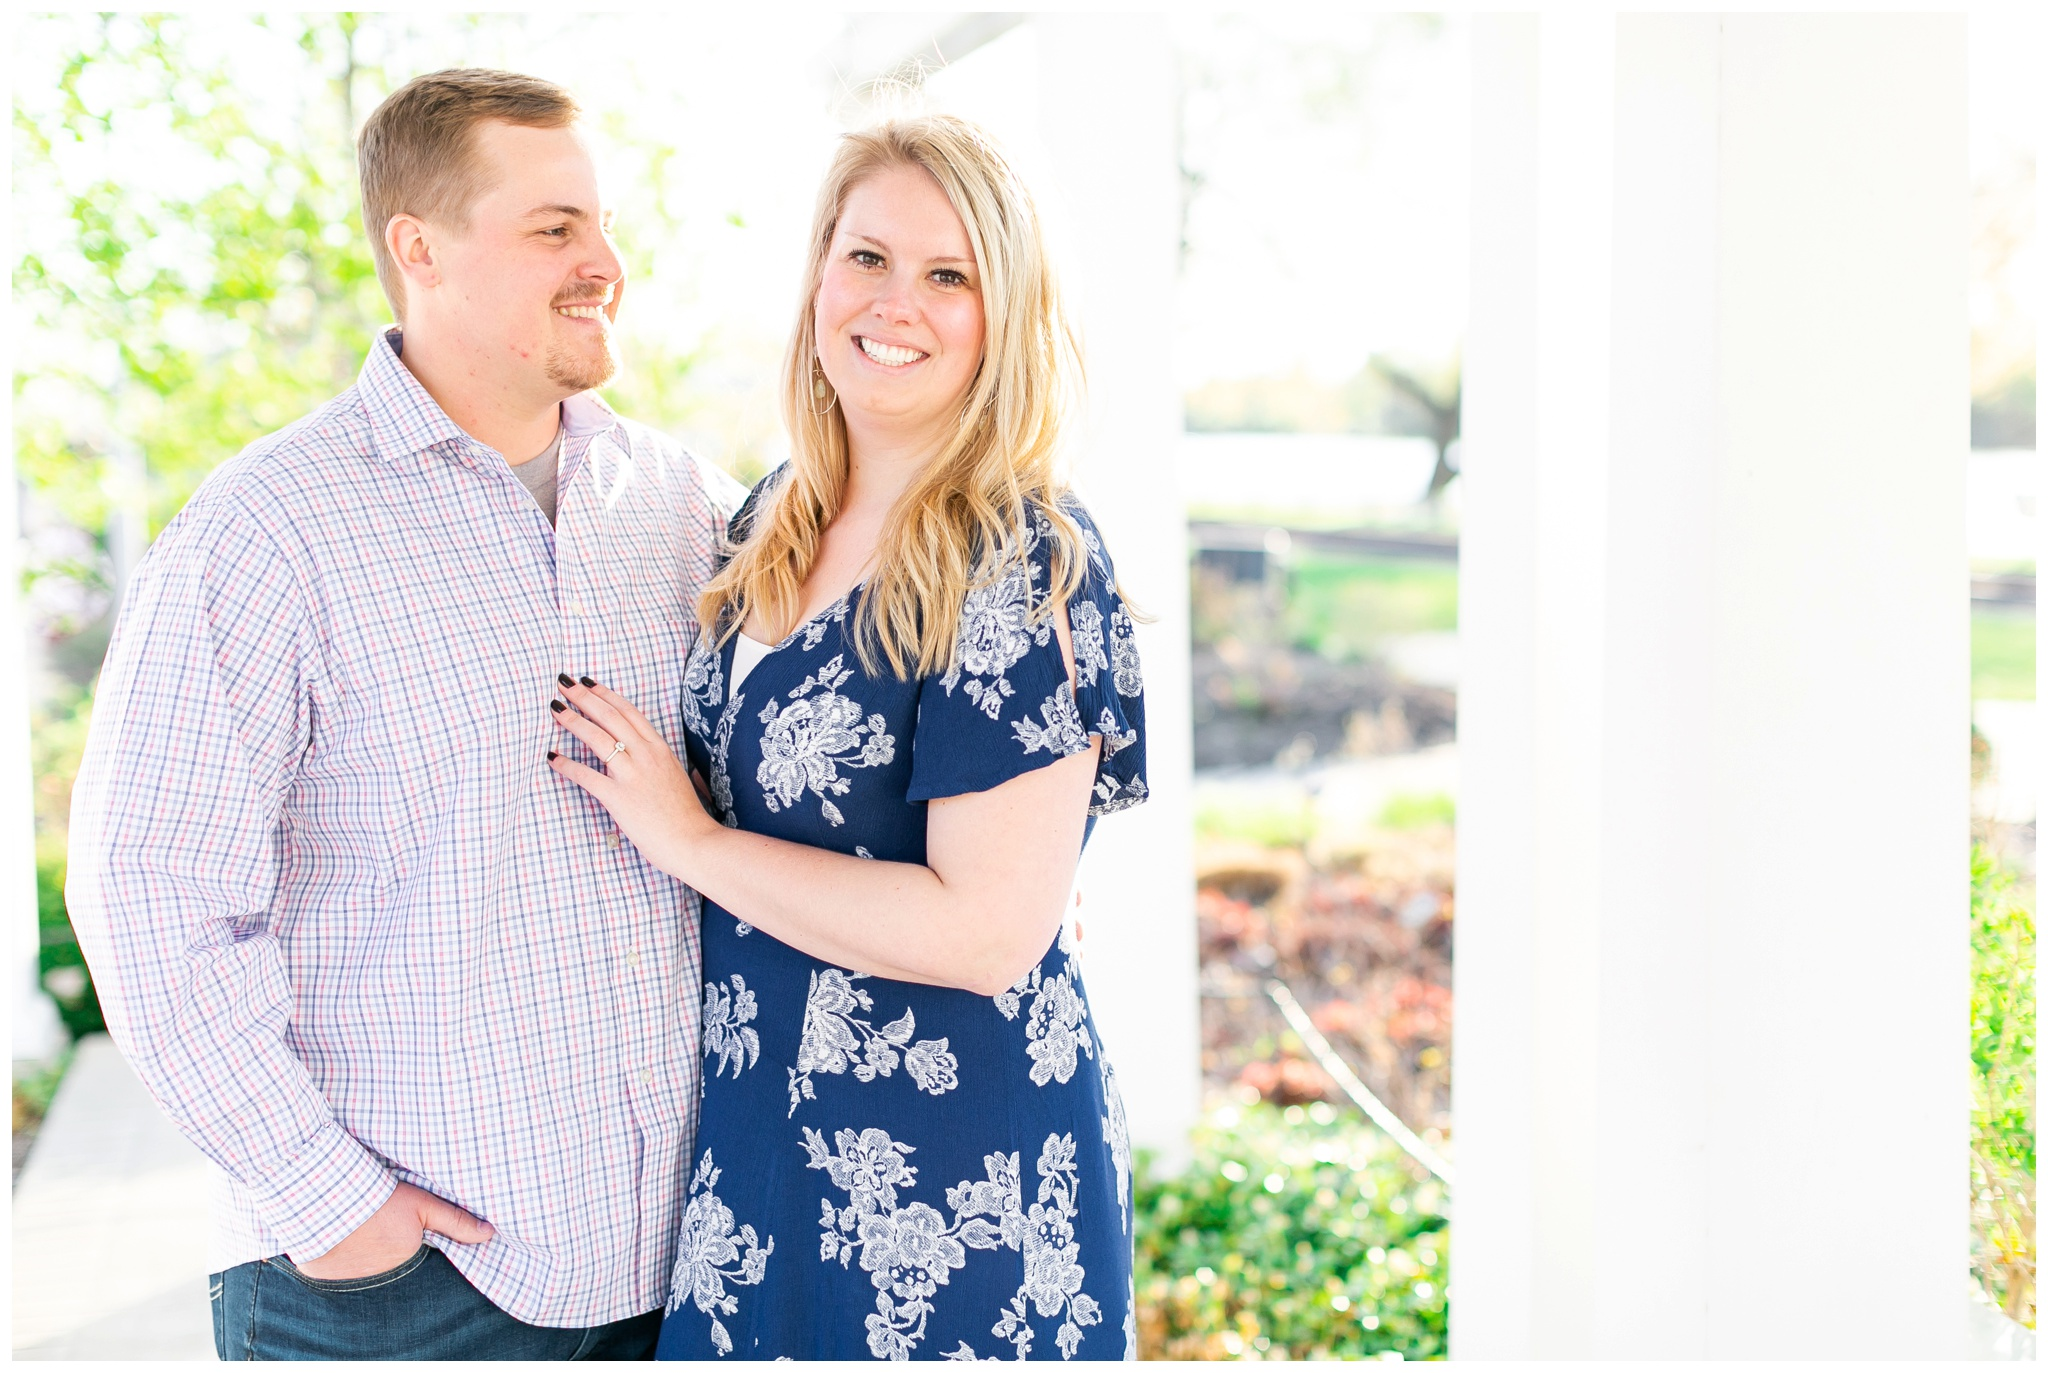 nicholas_conservatory_engagement_session_rockford_illinois_caynay_photo_2987.jpg